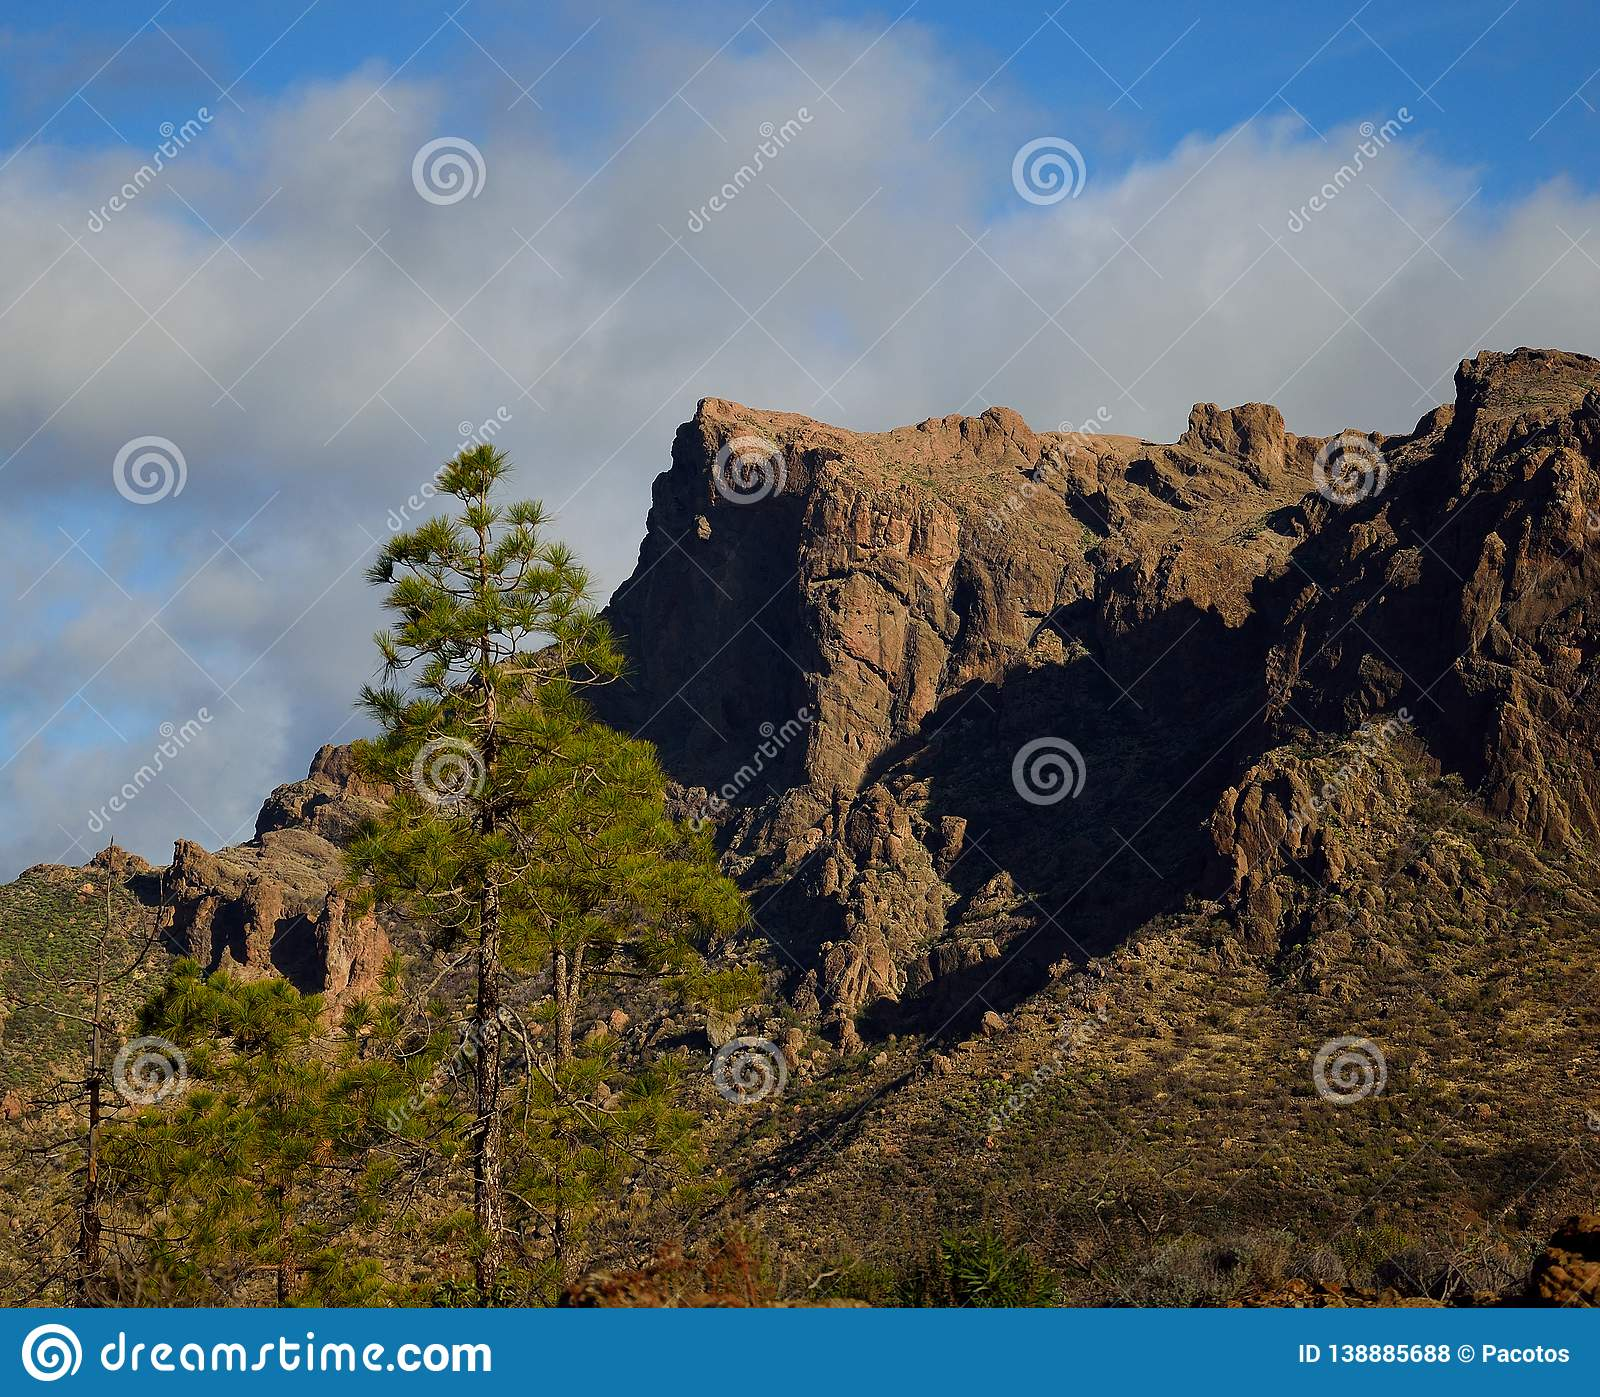 Pines and cliffs, La Plata, Gran Canaria